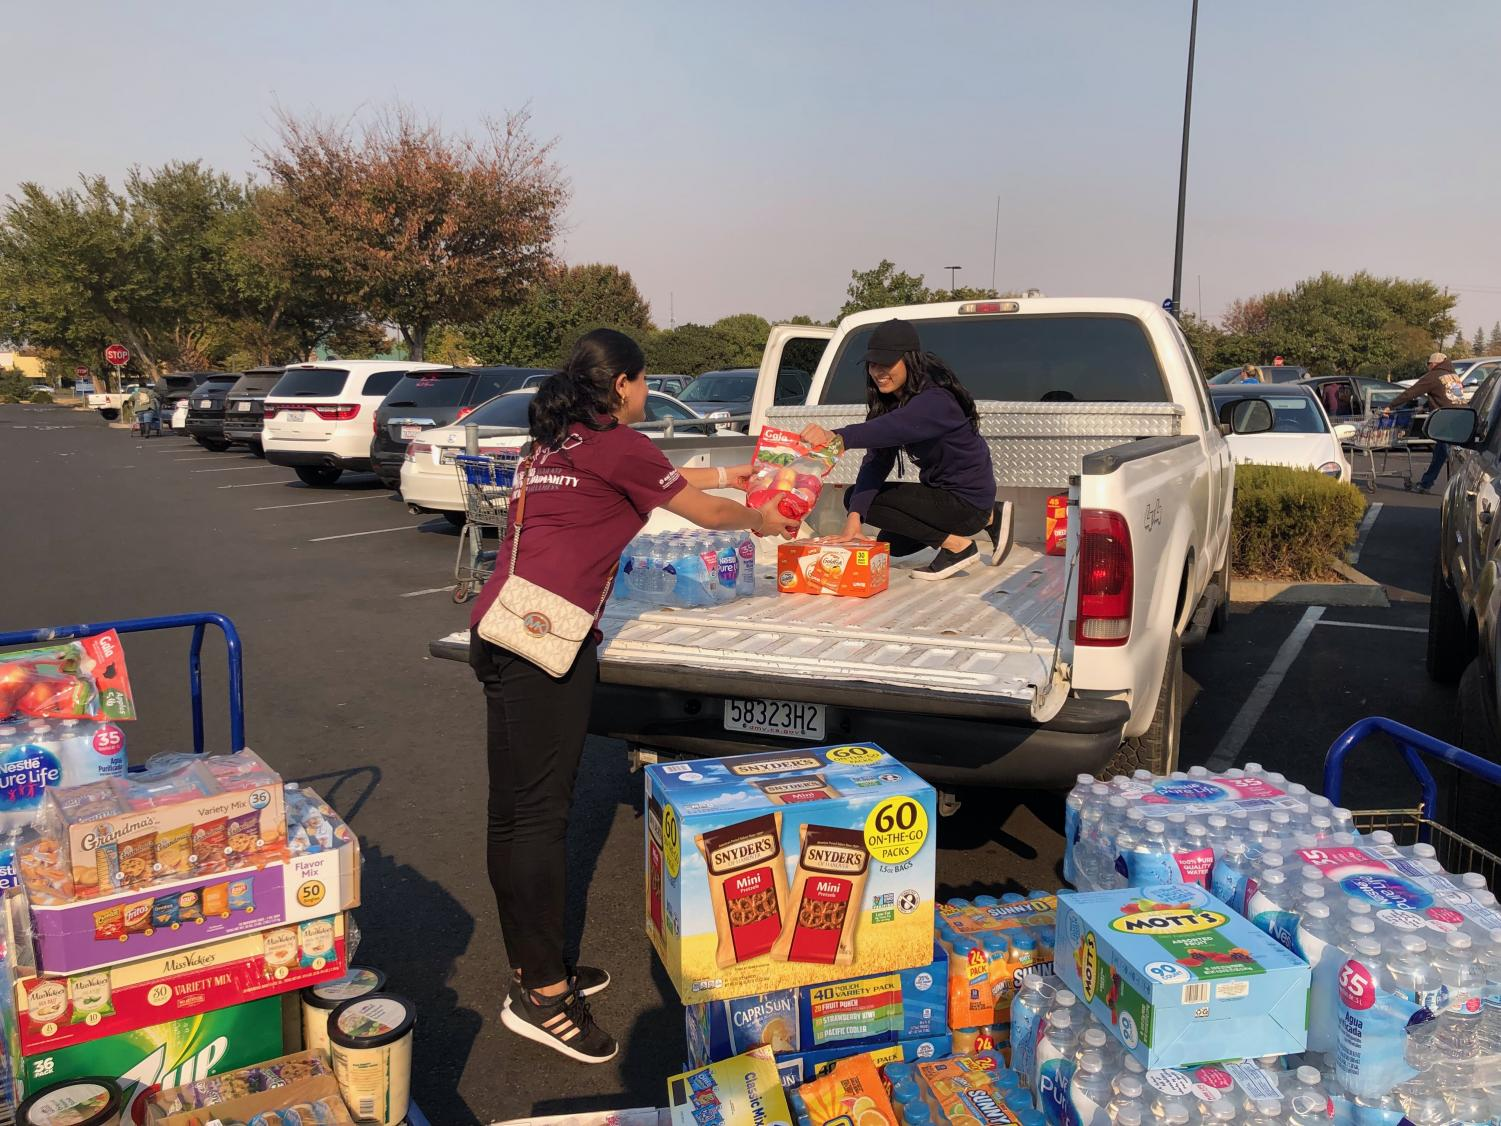 Bhagat Puran Singh Health Initiative's Jaskaran Nijjar, vice president, and Samreet Kaur, supplies manager and social media coodinator. Sac State's BPSHI service club donated food and menstrual products to Butte County shelters Sunday, Nov. 11, 2018.